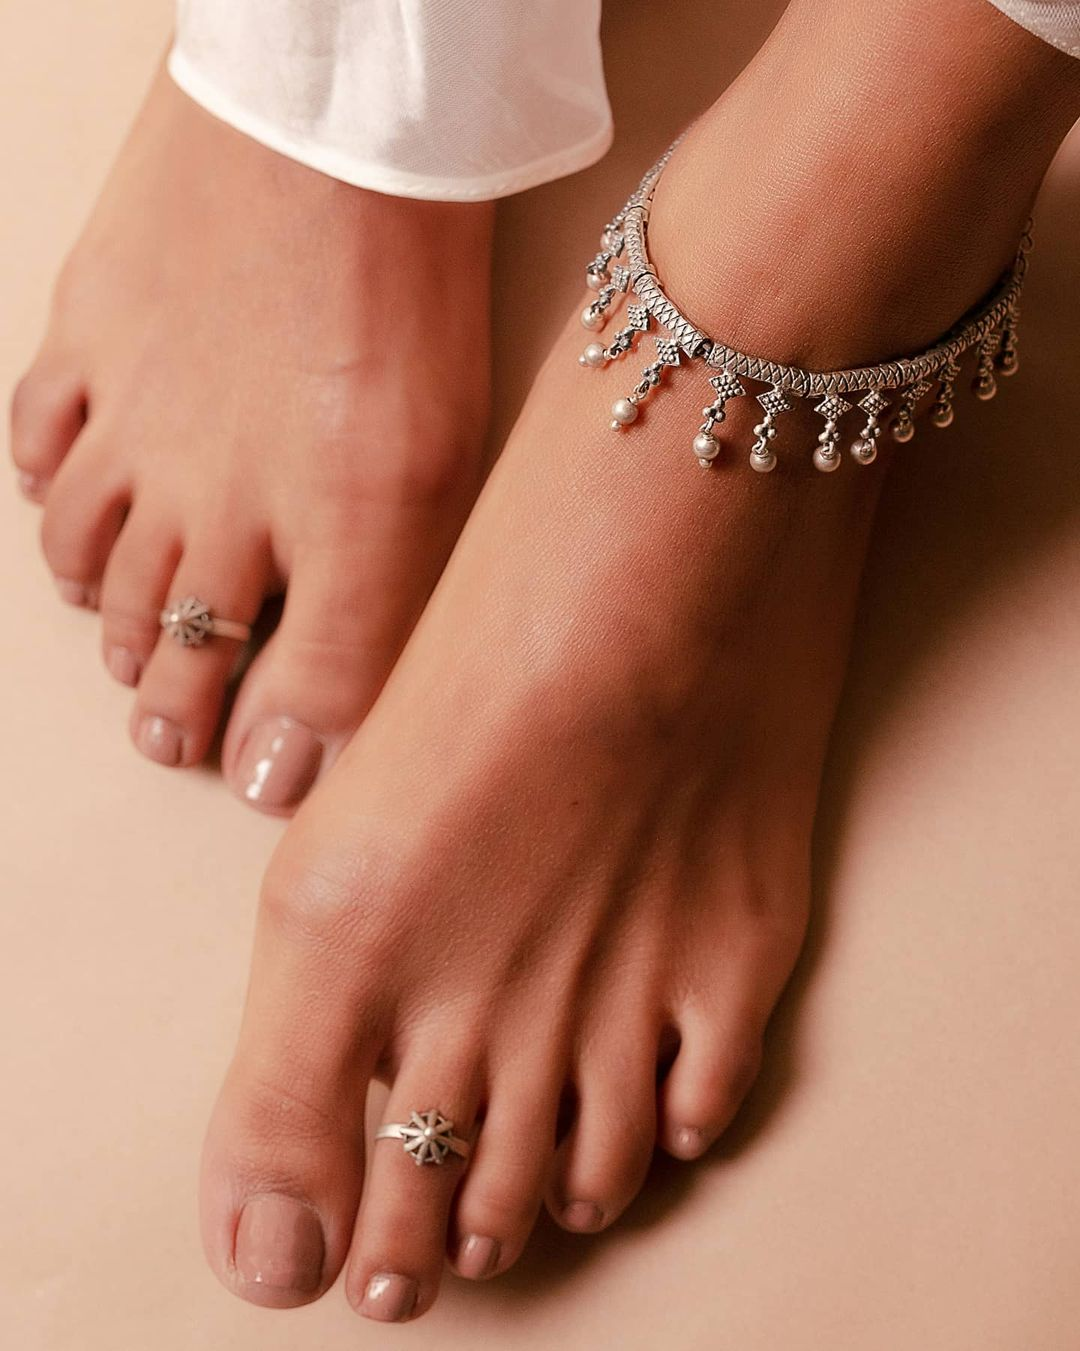 silver-anklets-toe-rings